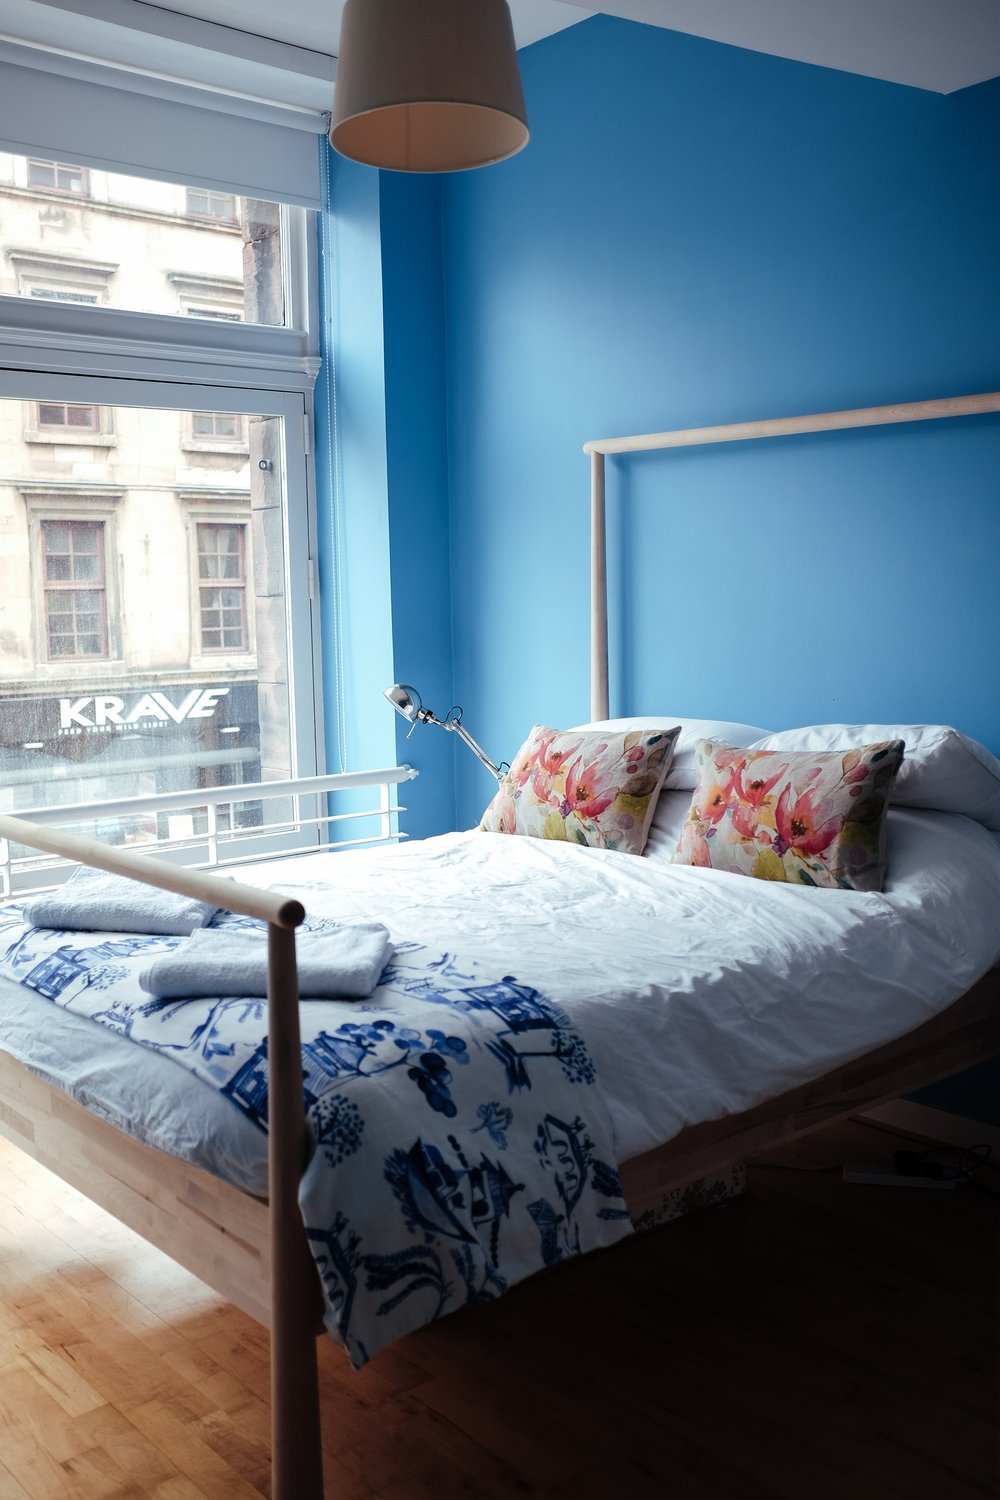 glasgow-accomodation-airbnb-2